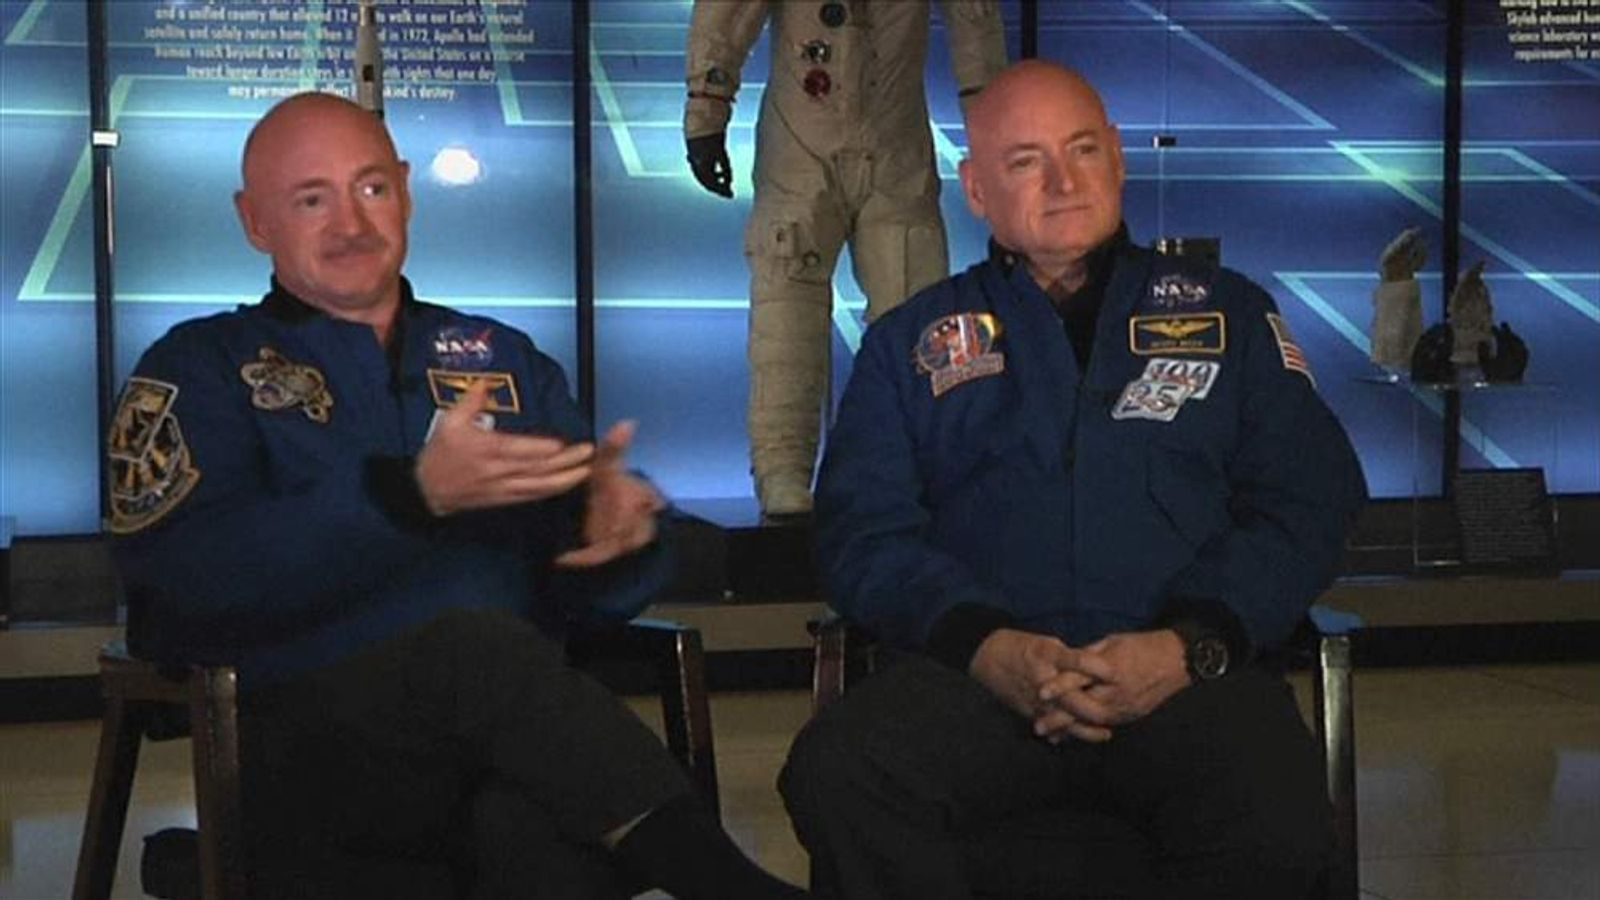 Mark Kelly (L) and Scott Kelly